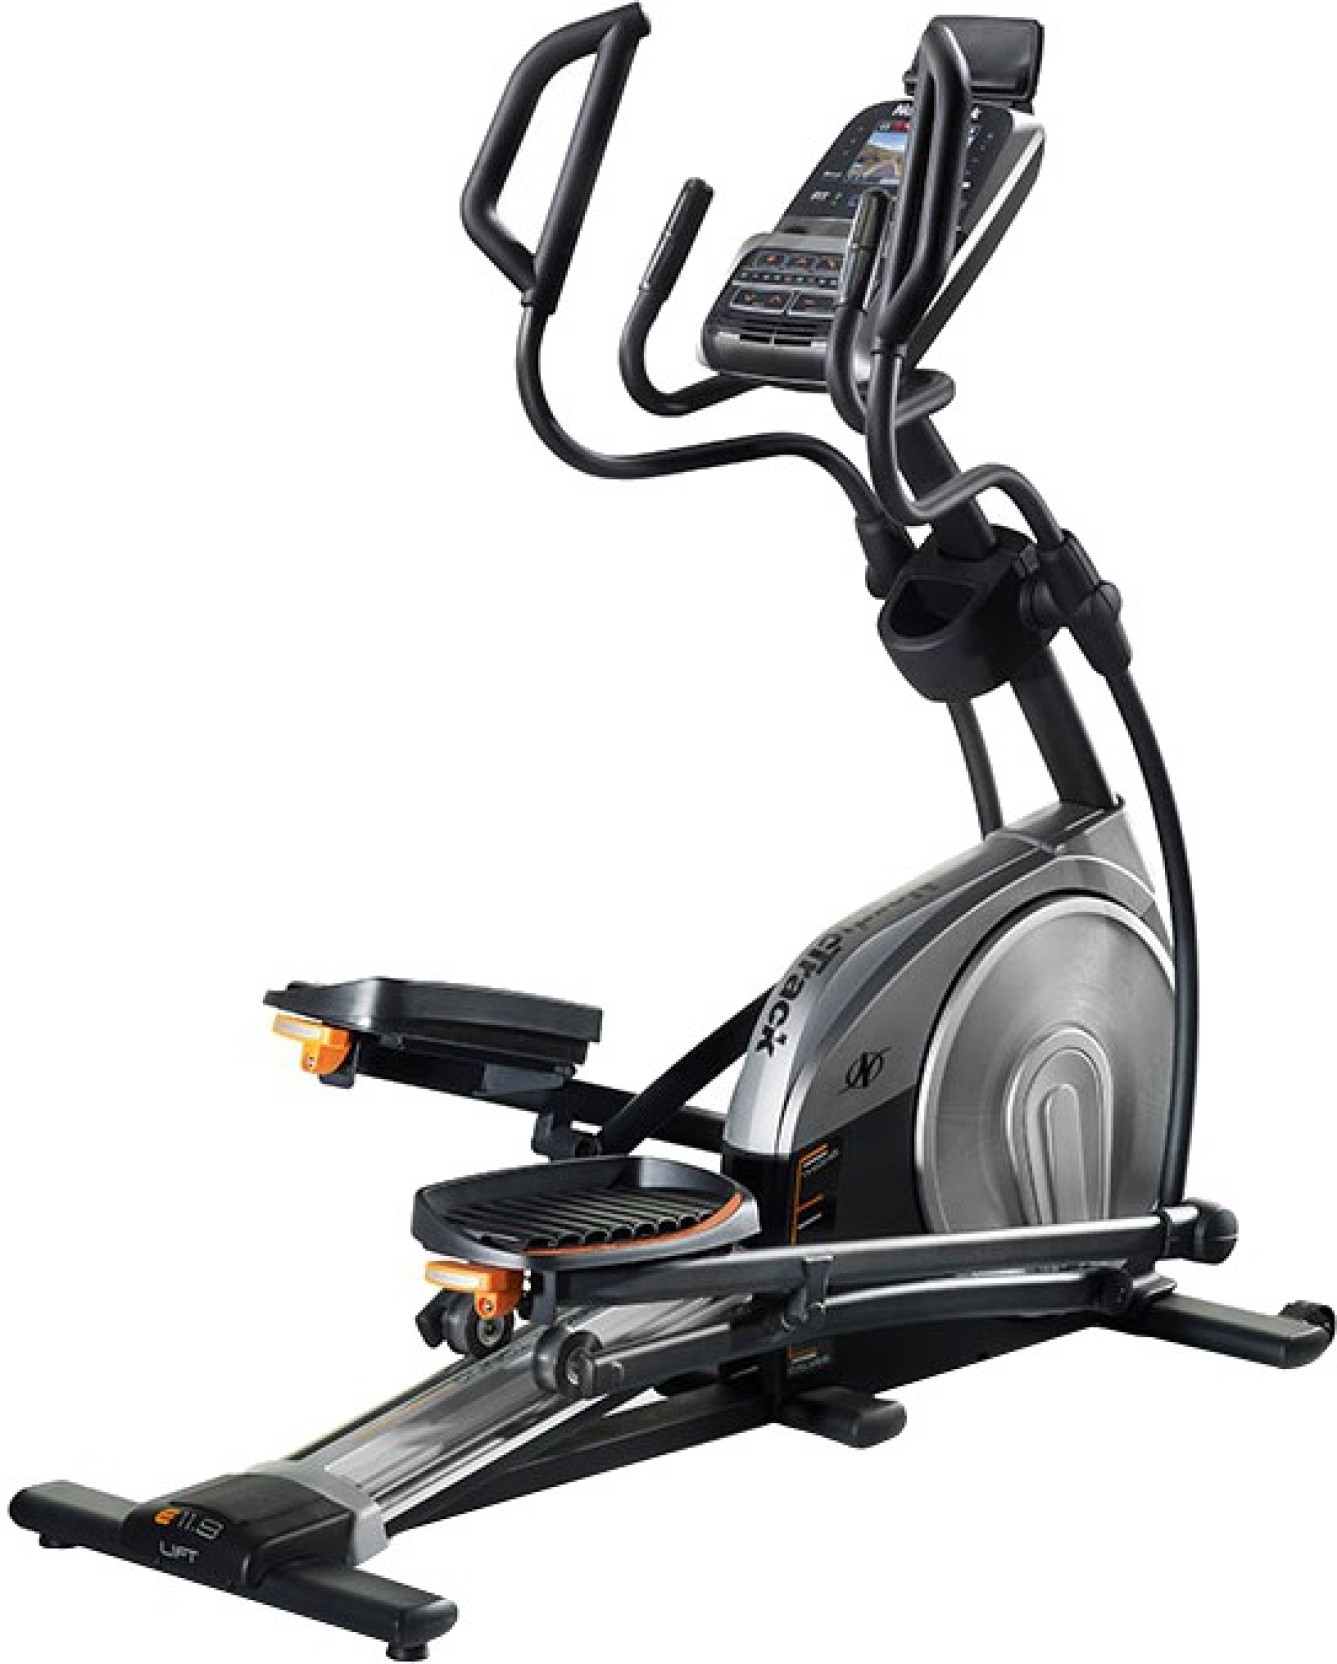 NordicTrack E 11.9 Front Drive Elliptical Trainers Cross